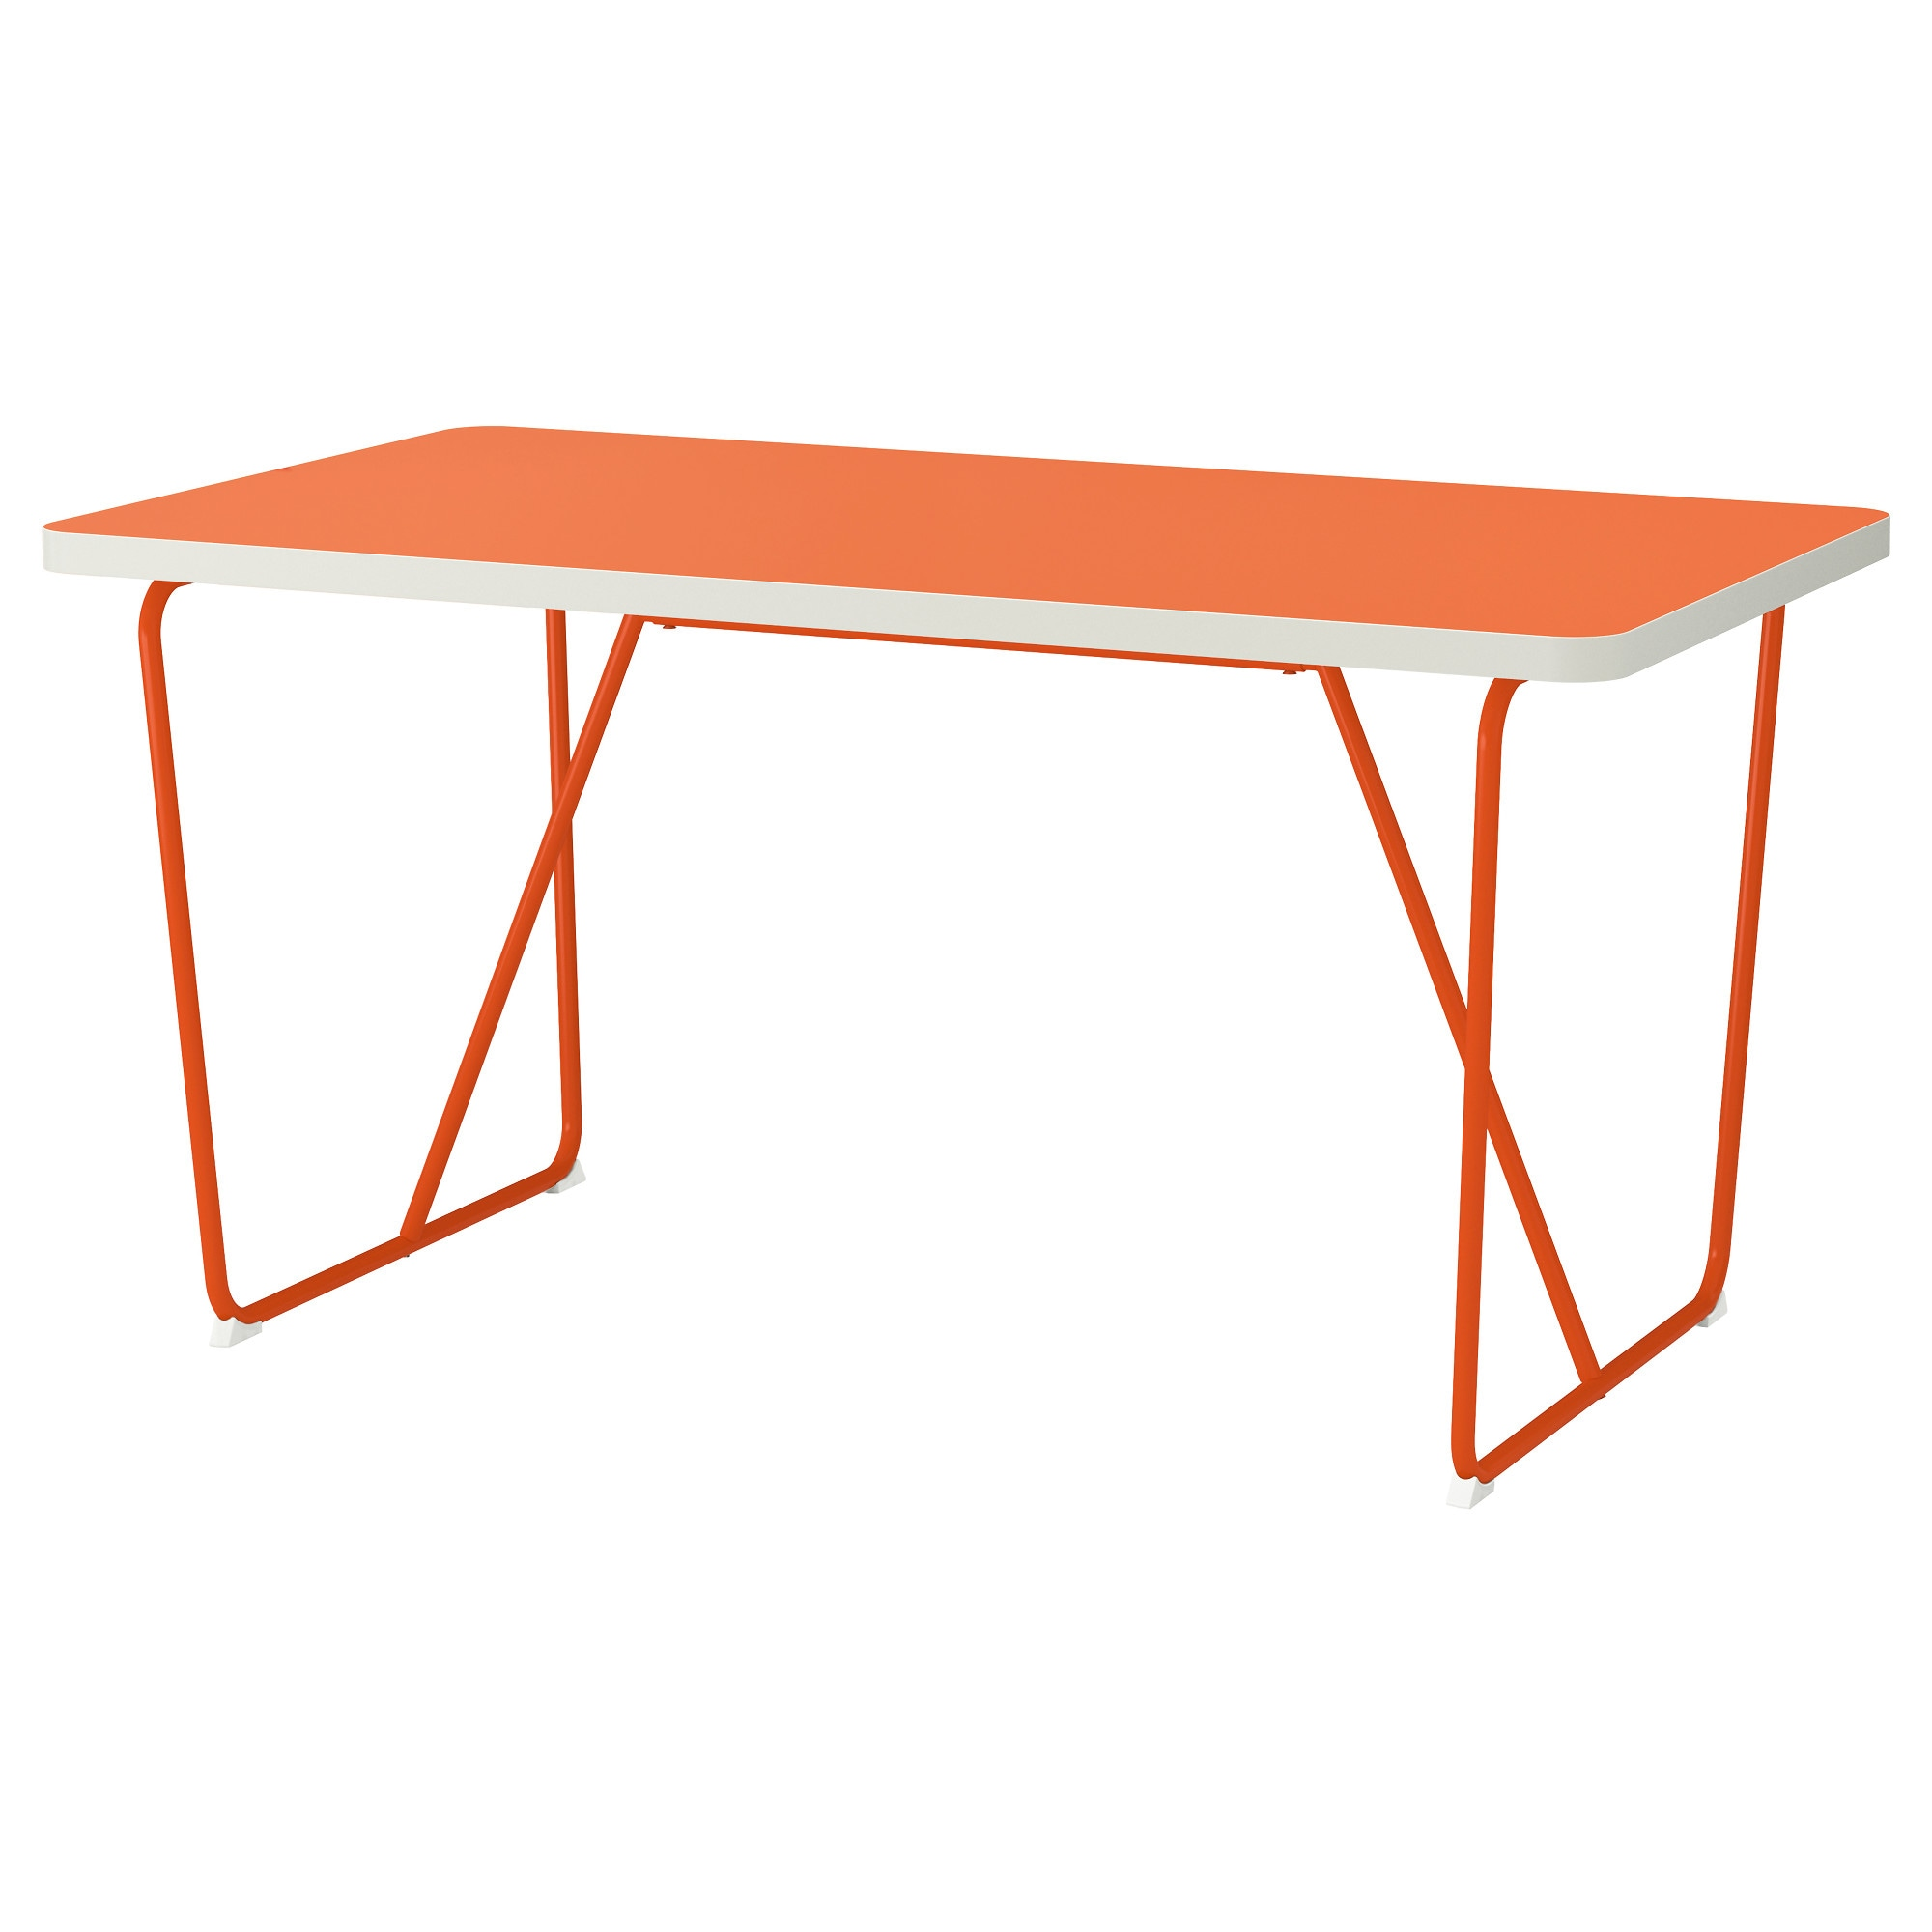 RydebÄck Table Orange Backaryd